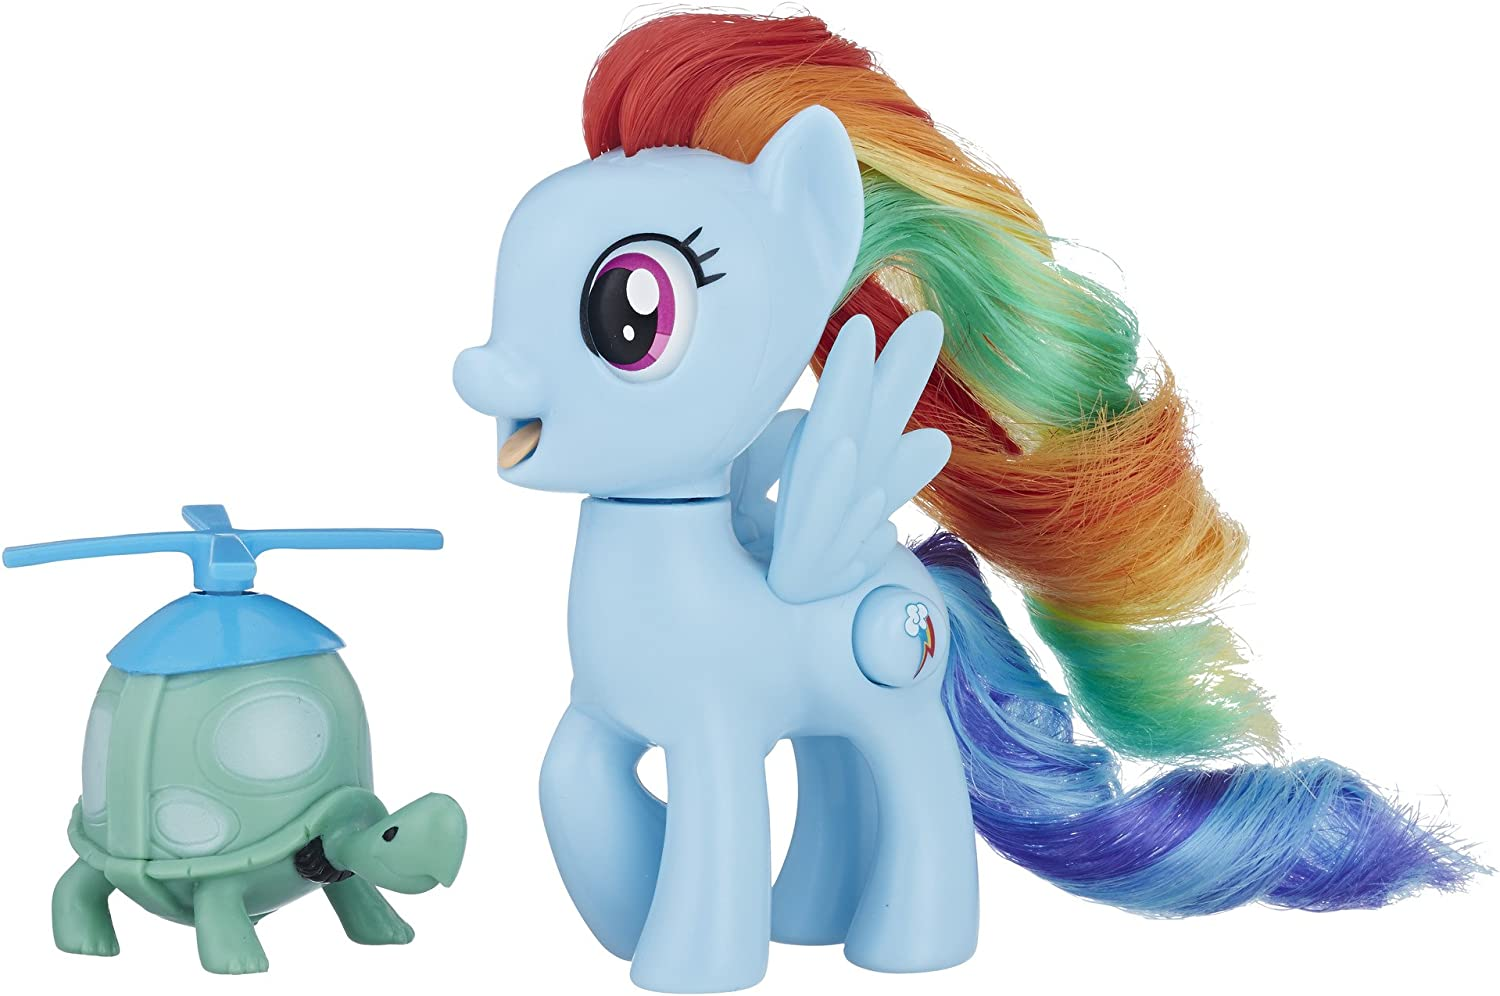 - Amazon.com: My Little Pony Silly Looks Rainbow Dash: Toys & Games